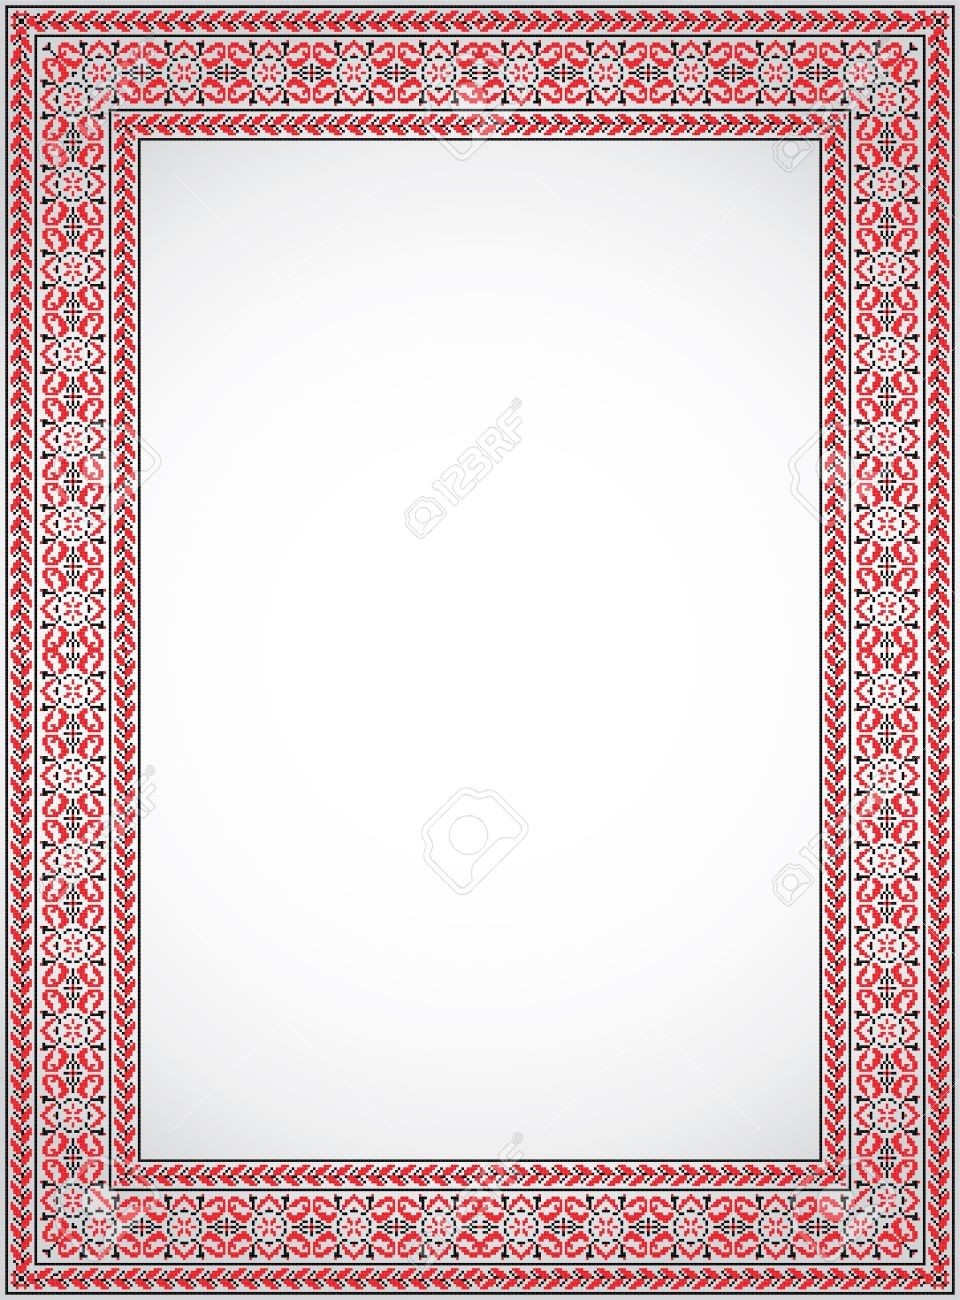 the vertical frame a stylized cross stitch ukrainian ornament stock vector 14101542